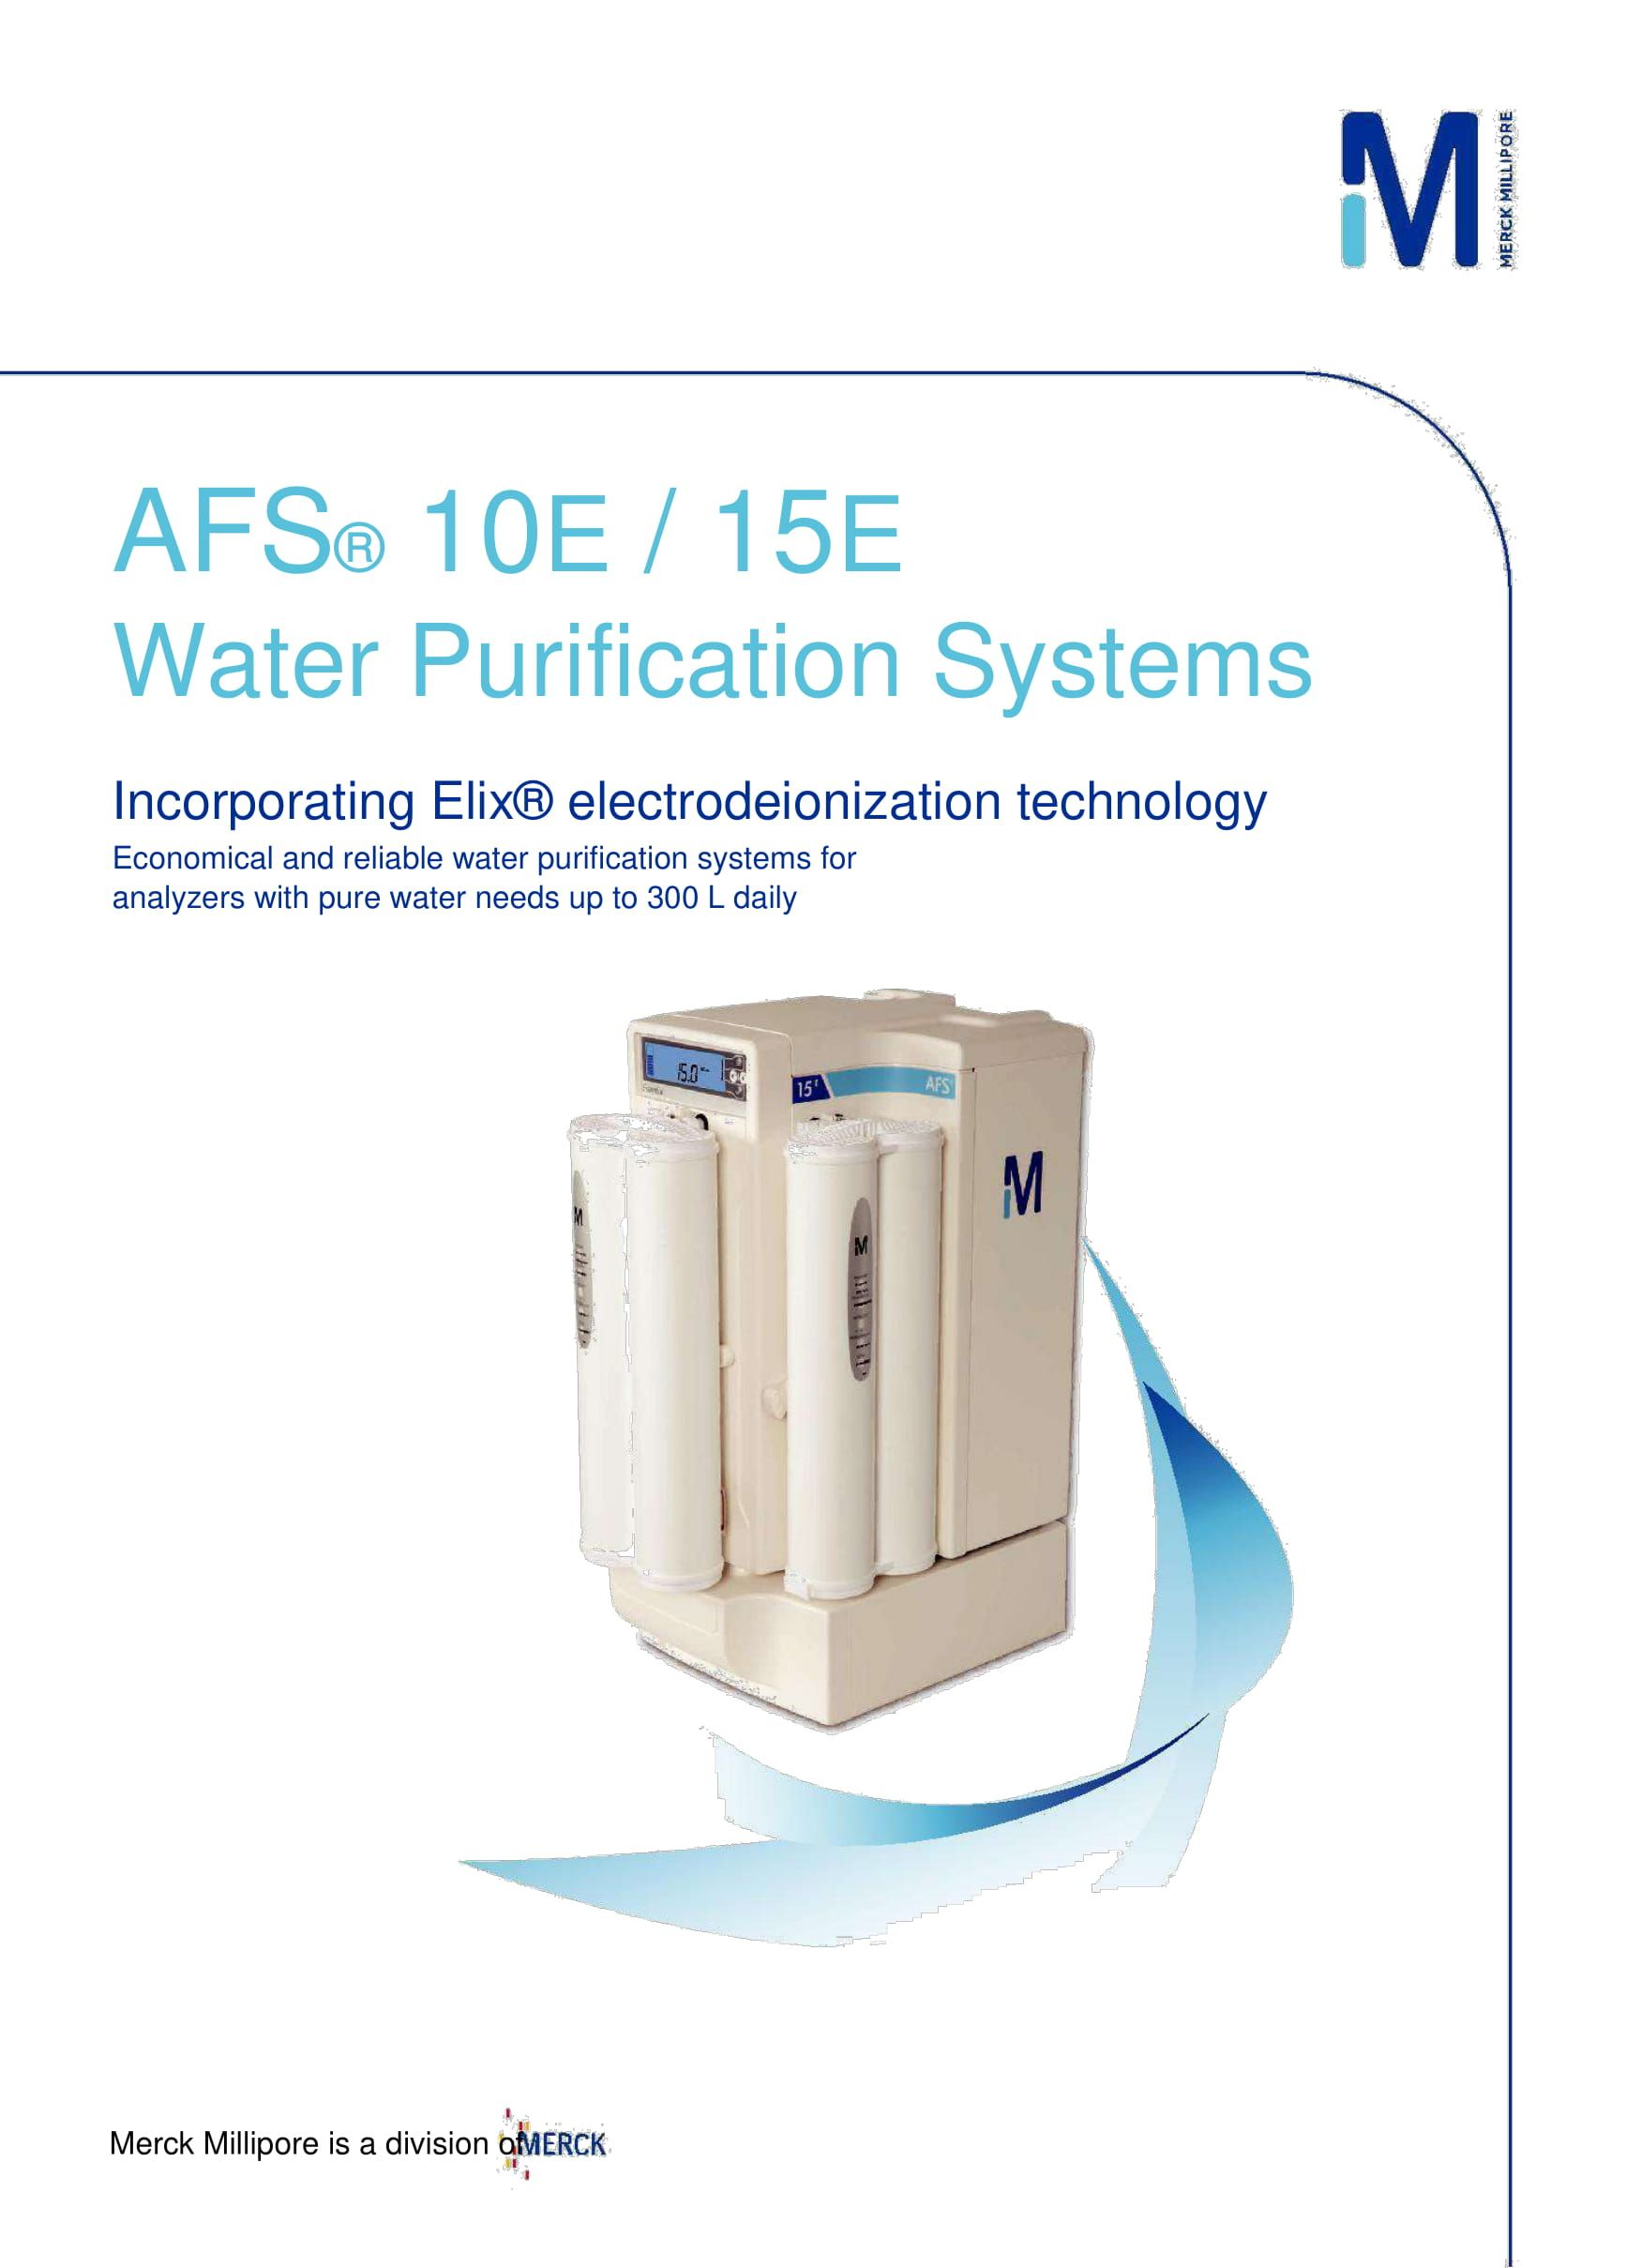 afsa e systems combine state of the art elixa electrodeionization